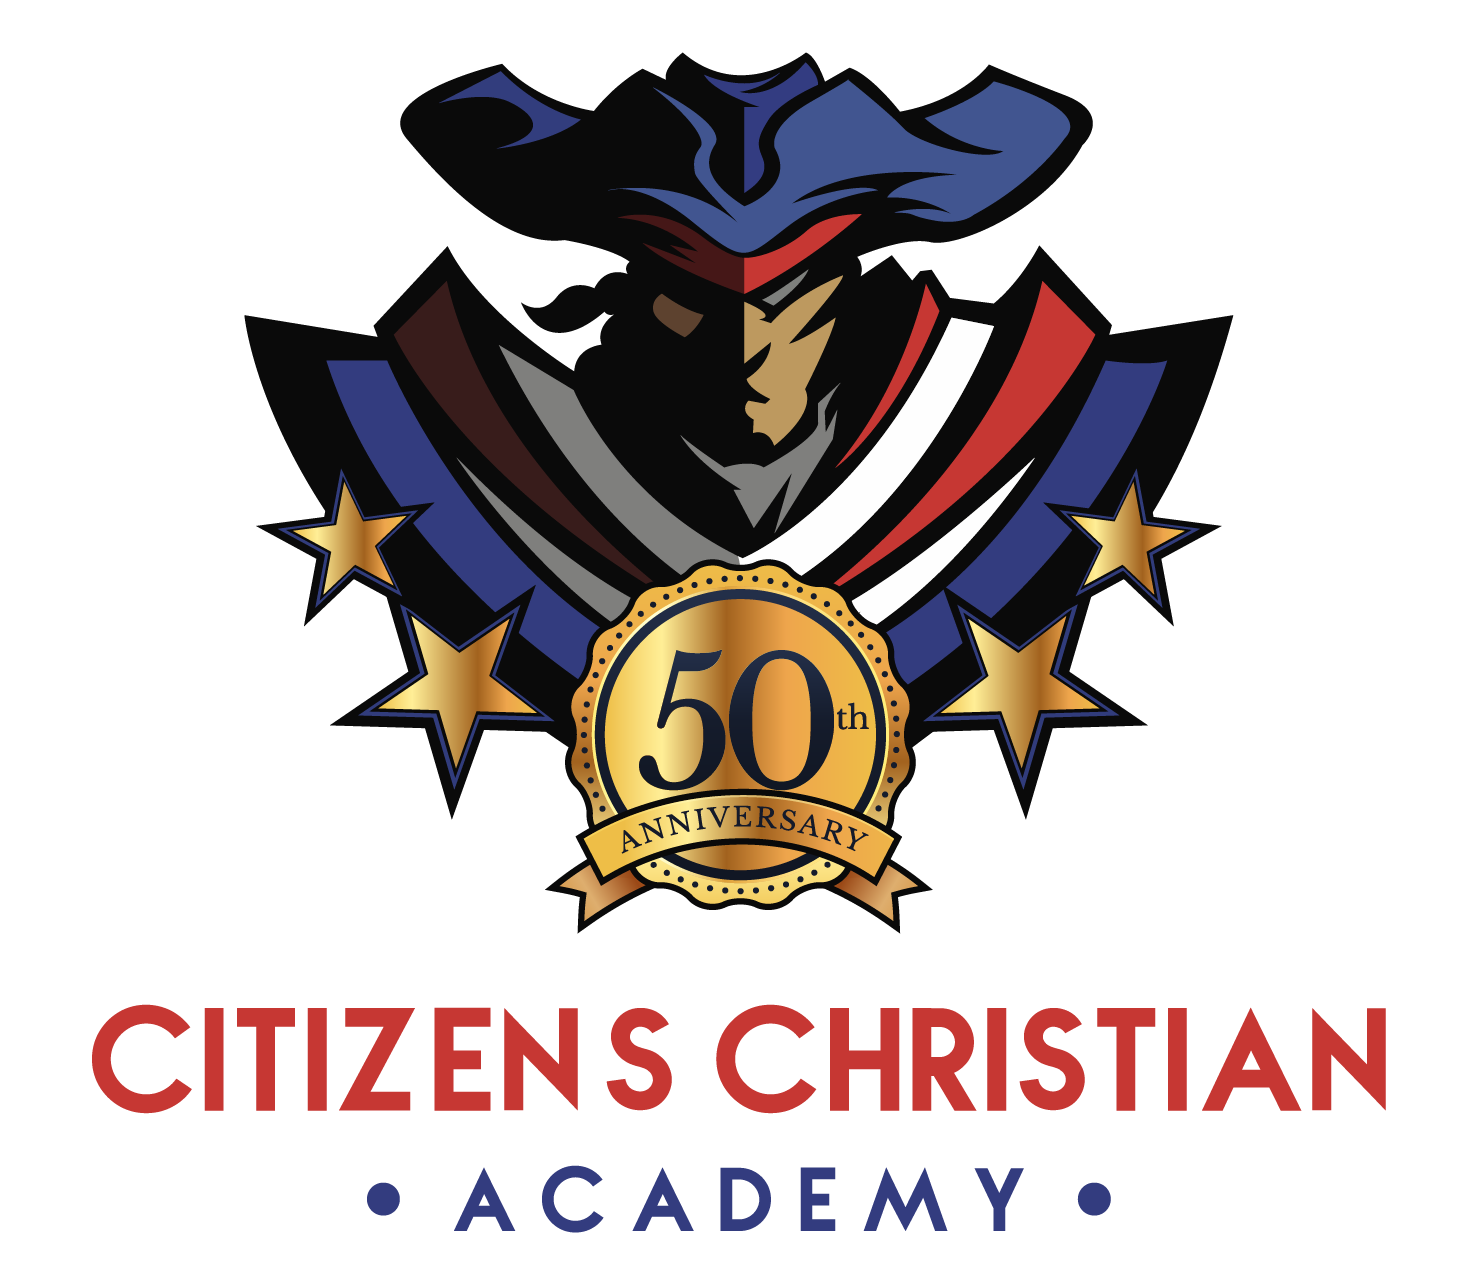 Citizens Christian Academy